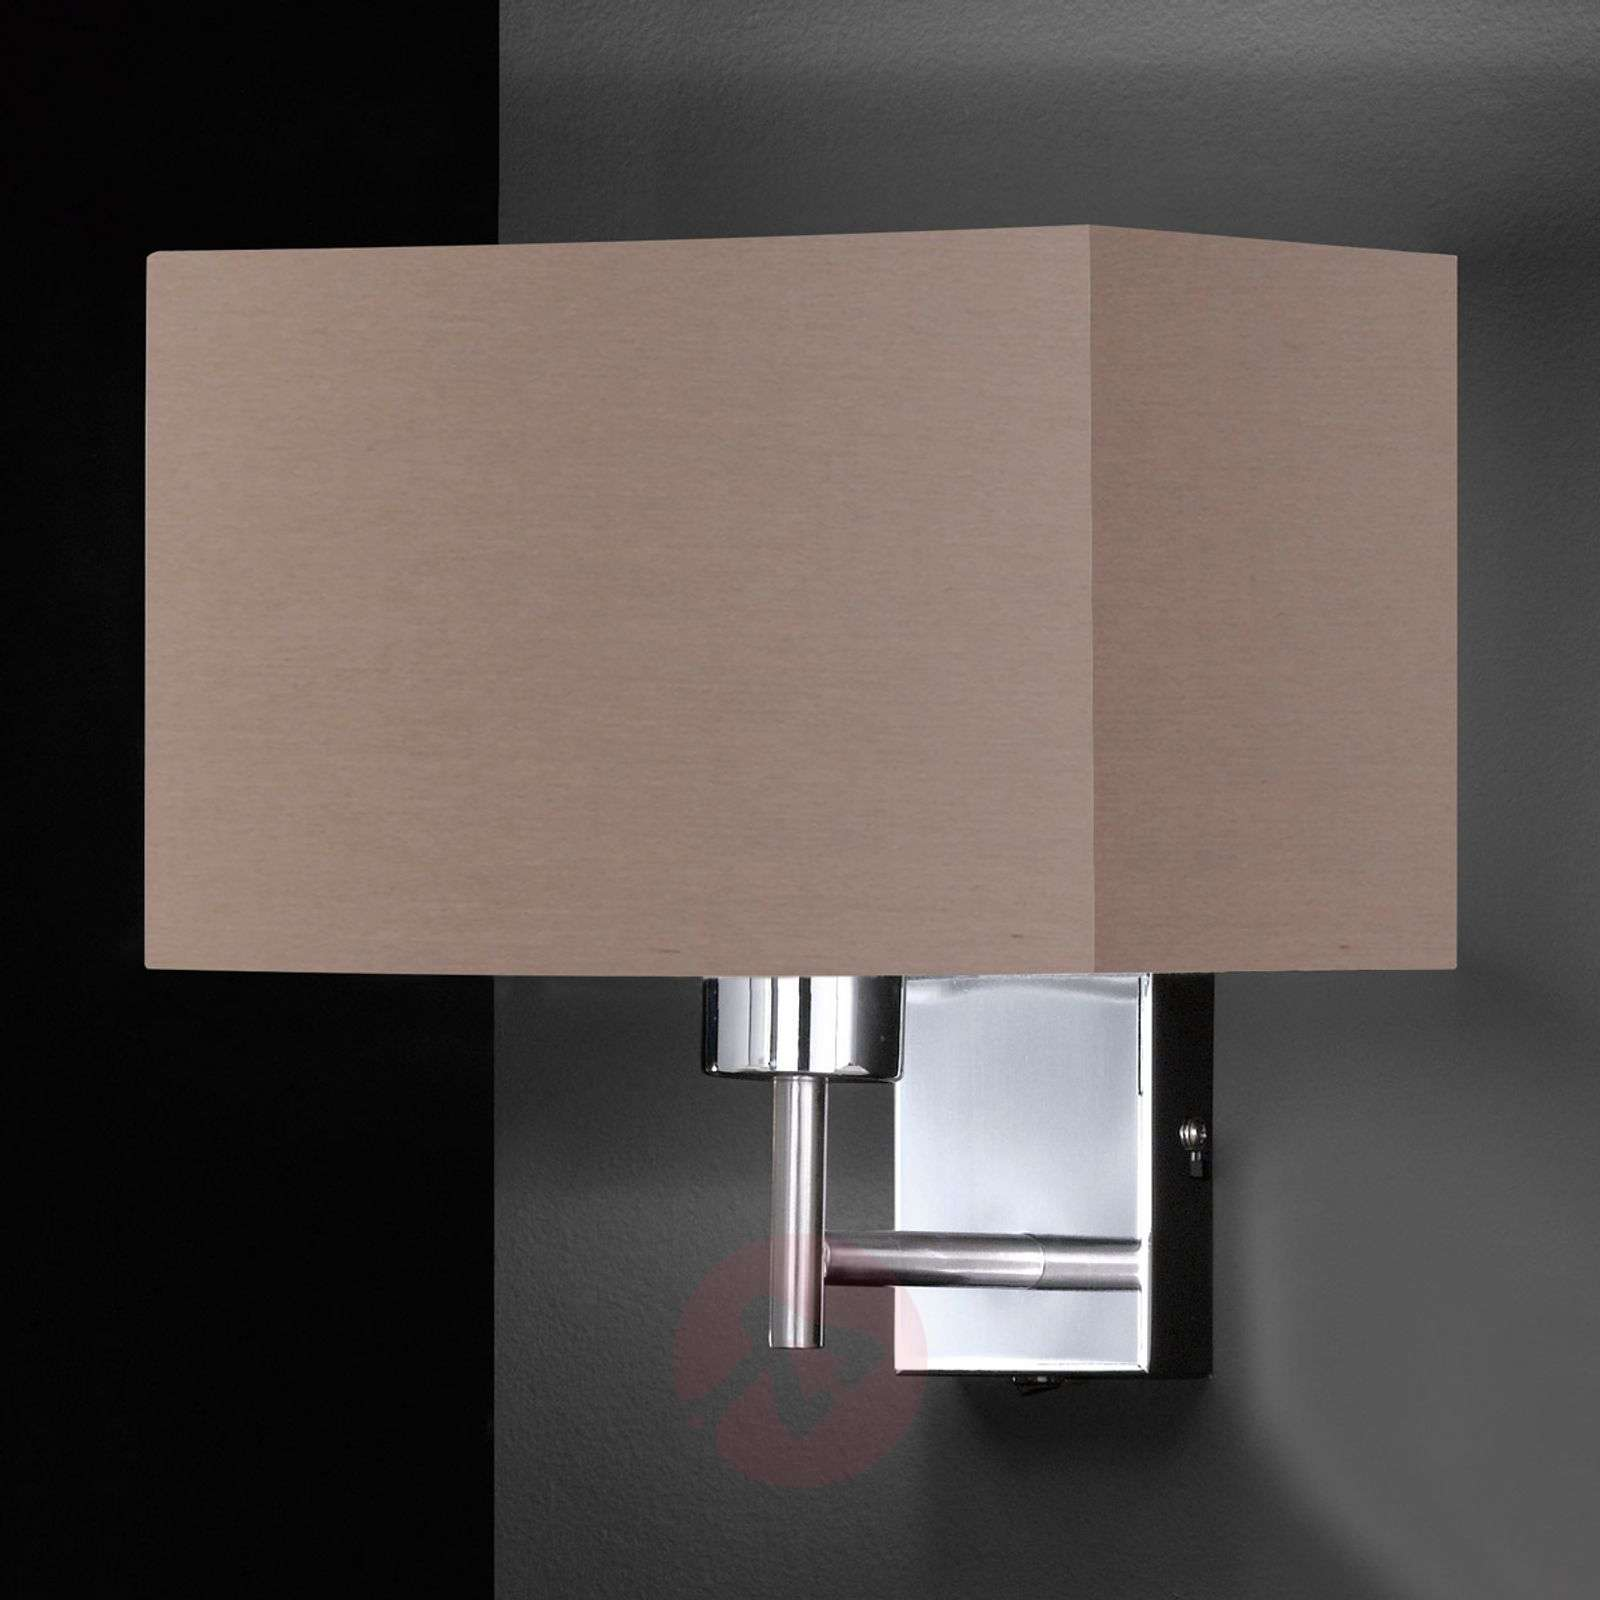 Kempten a modern wall light-4581172-01